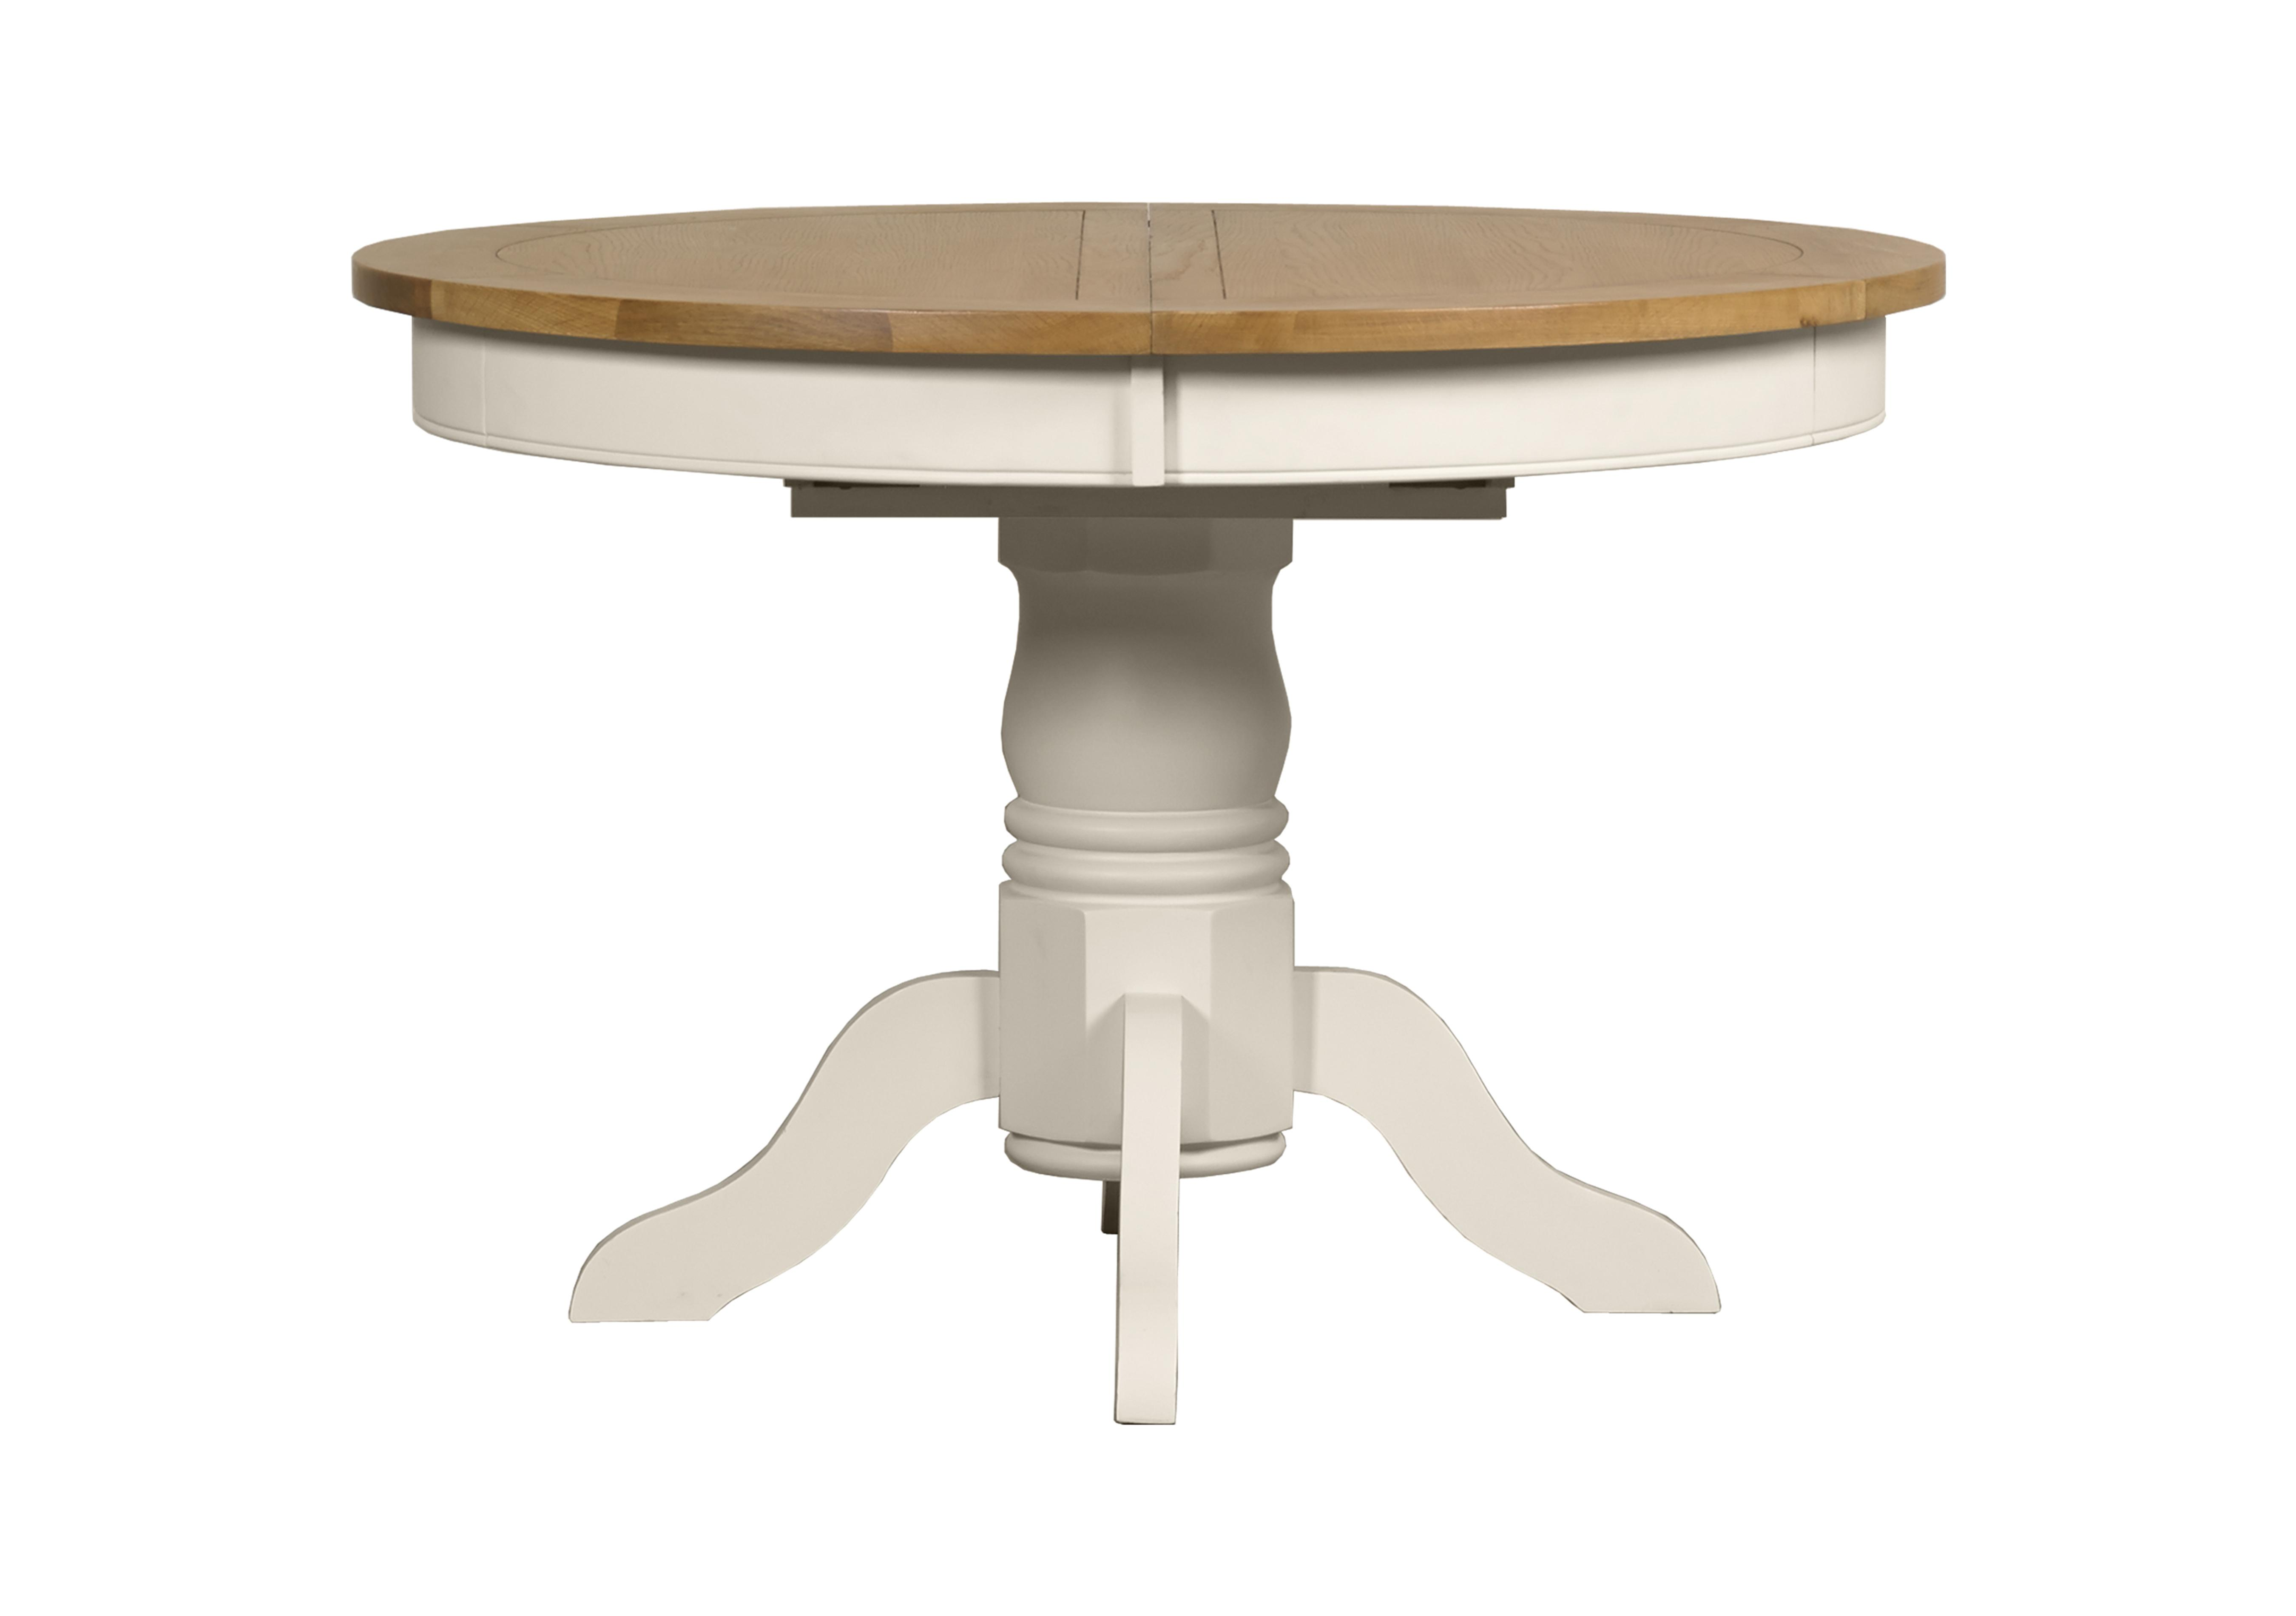 Photos of round extendable dining table arles round extending dining table furniture village mniaqtn